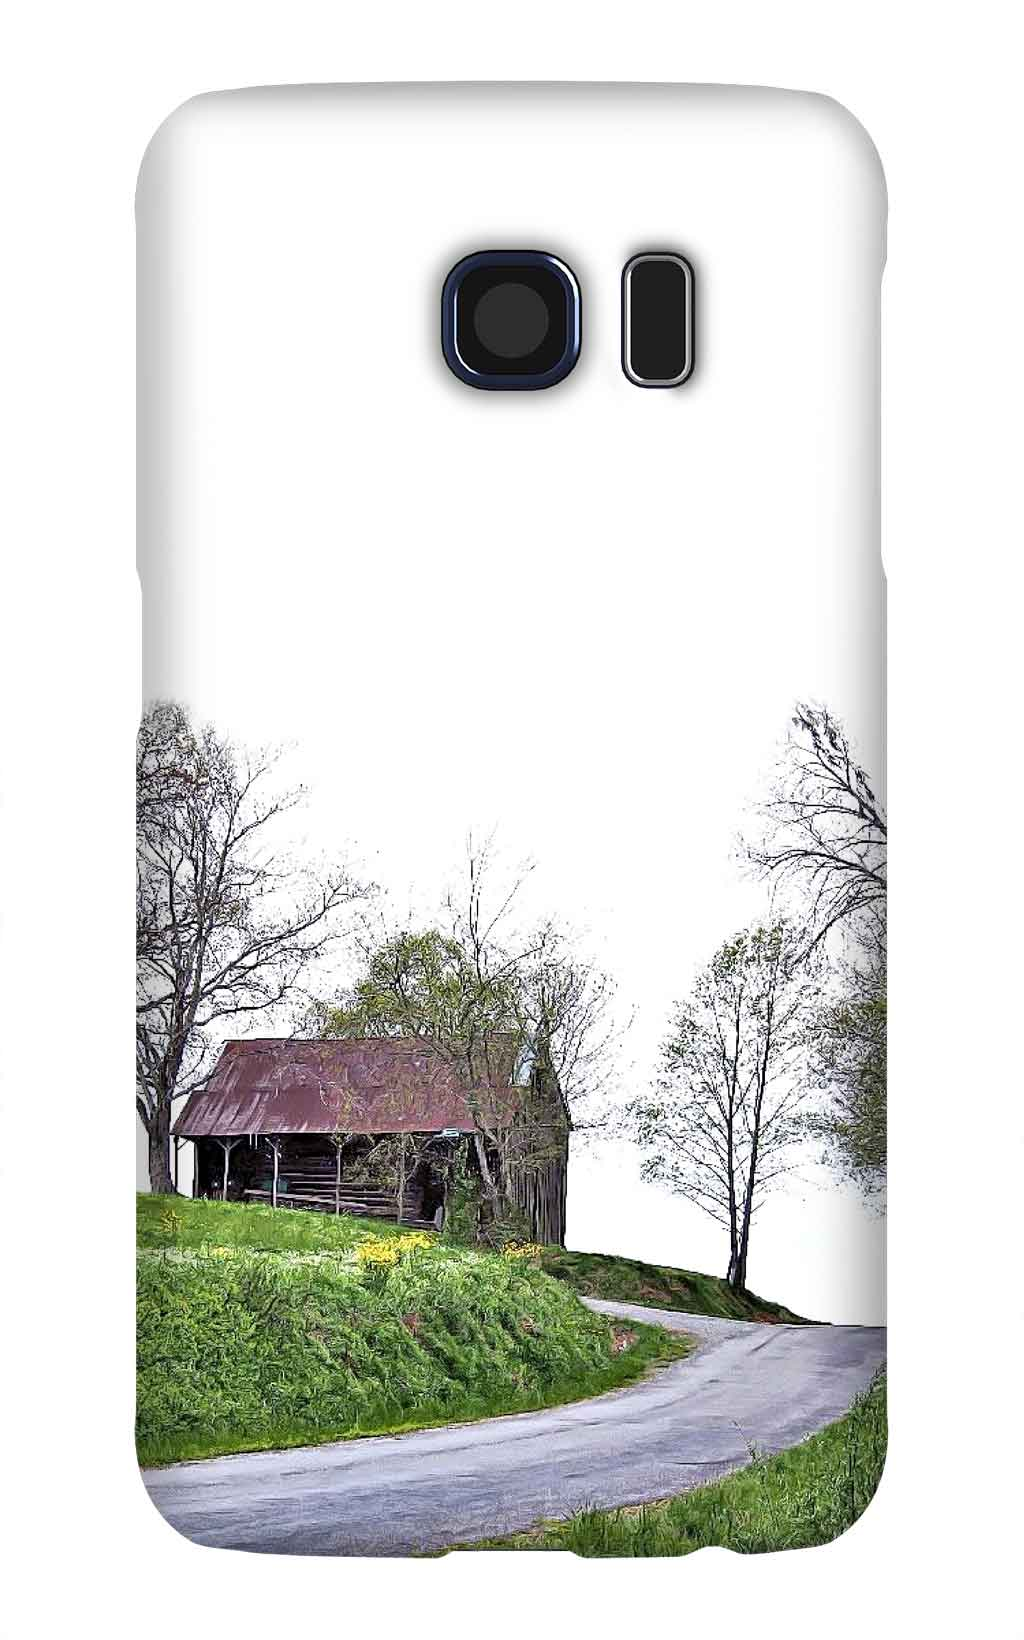 Product, Cellphone Case: Obsidian – Black barn with red metal roof on top of hill